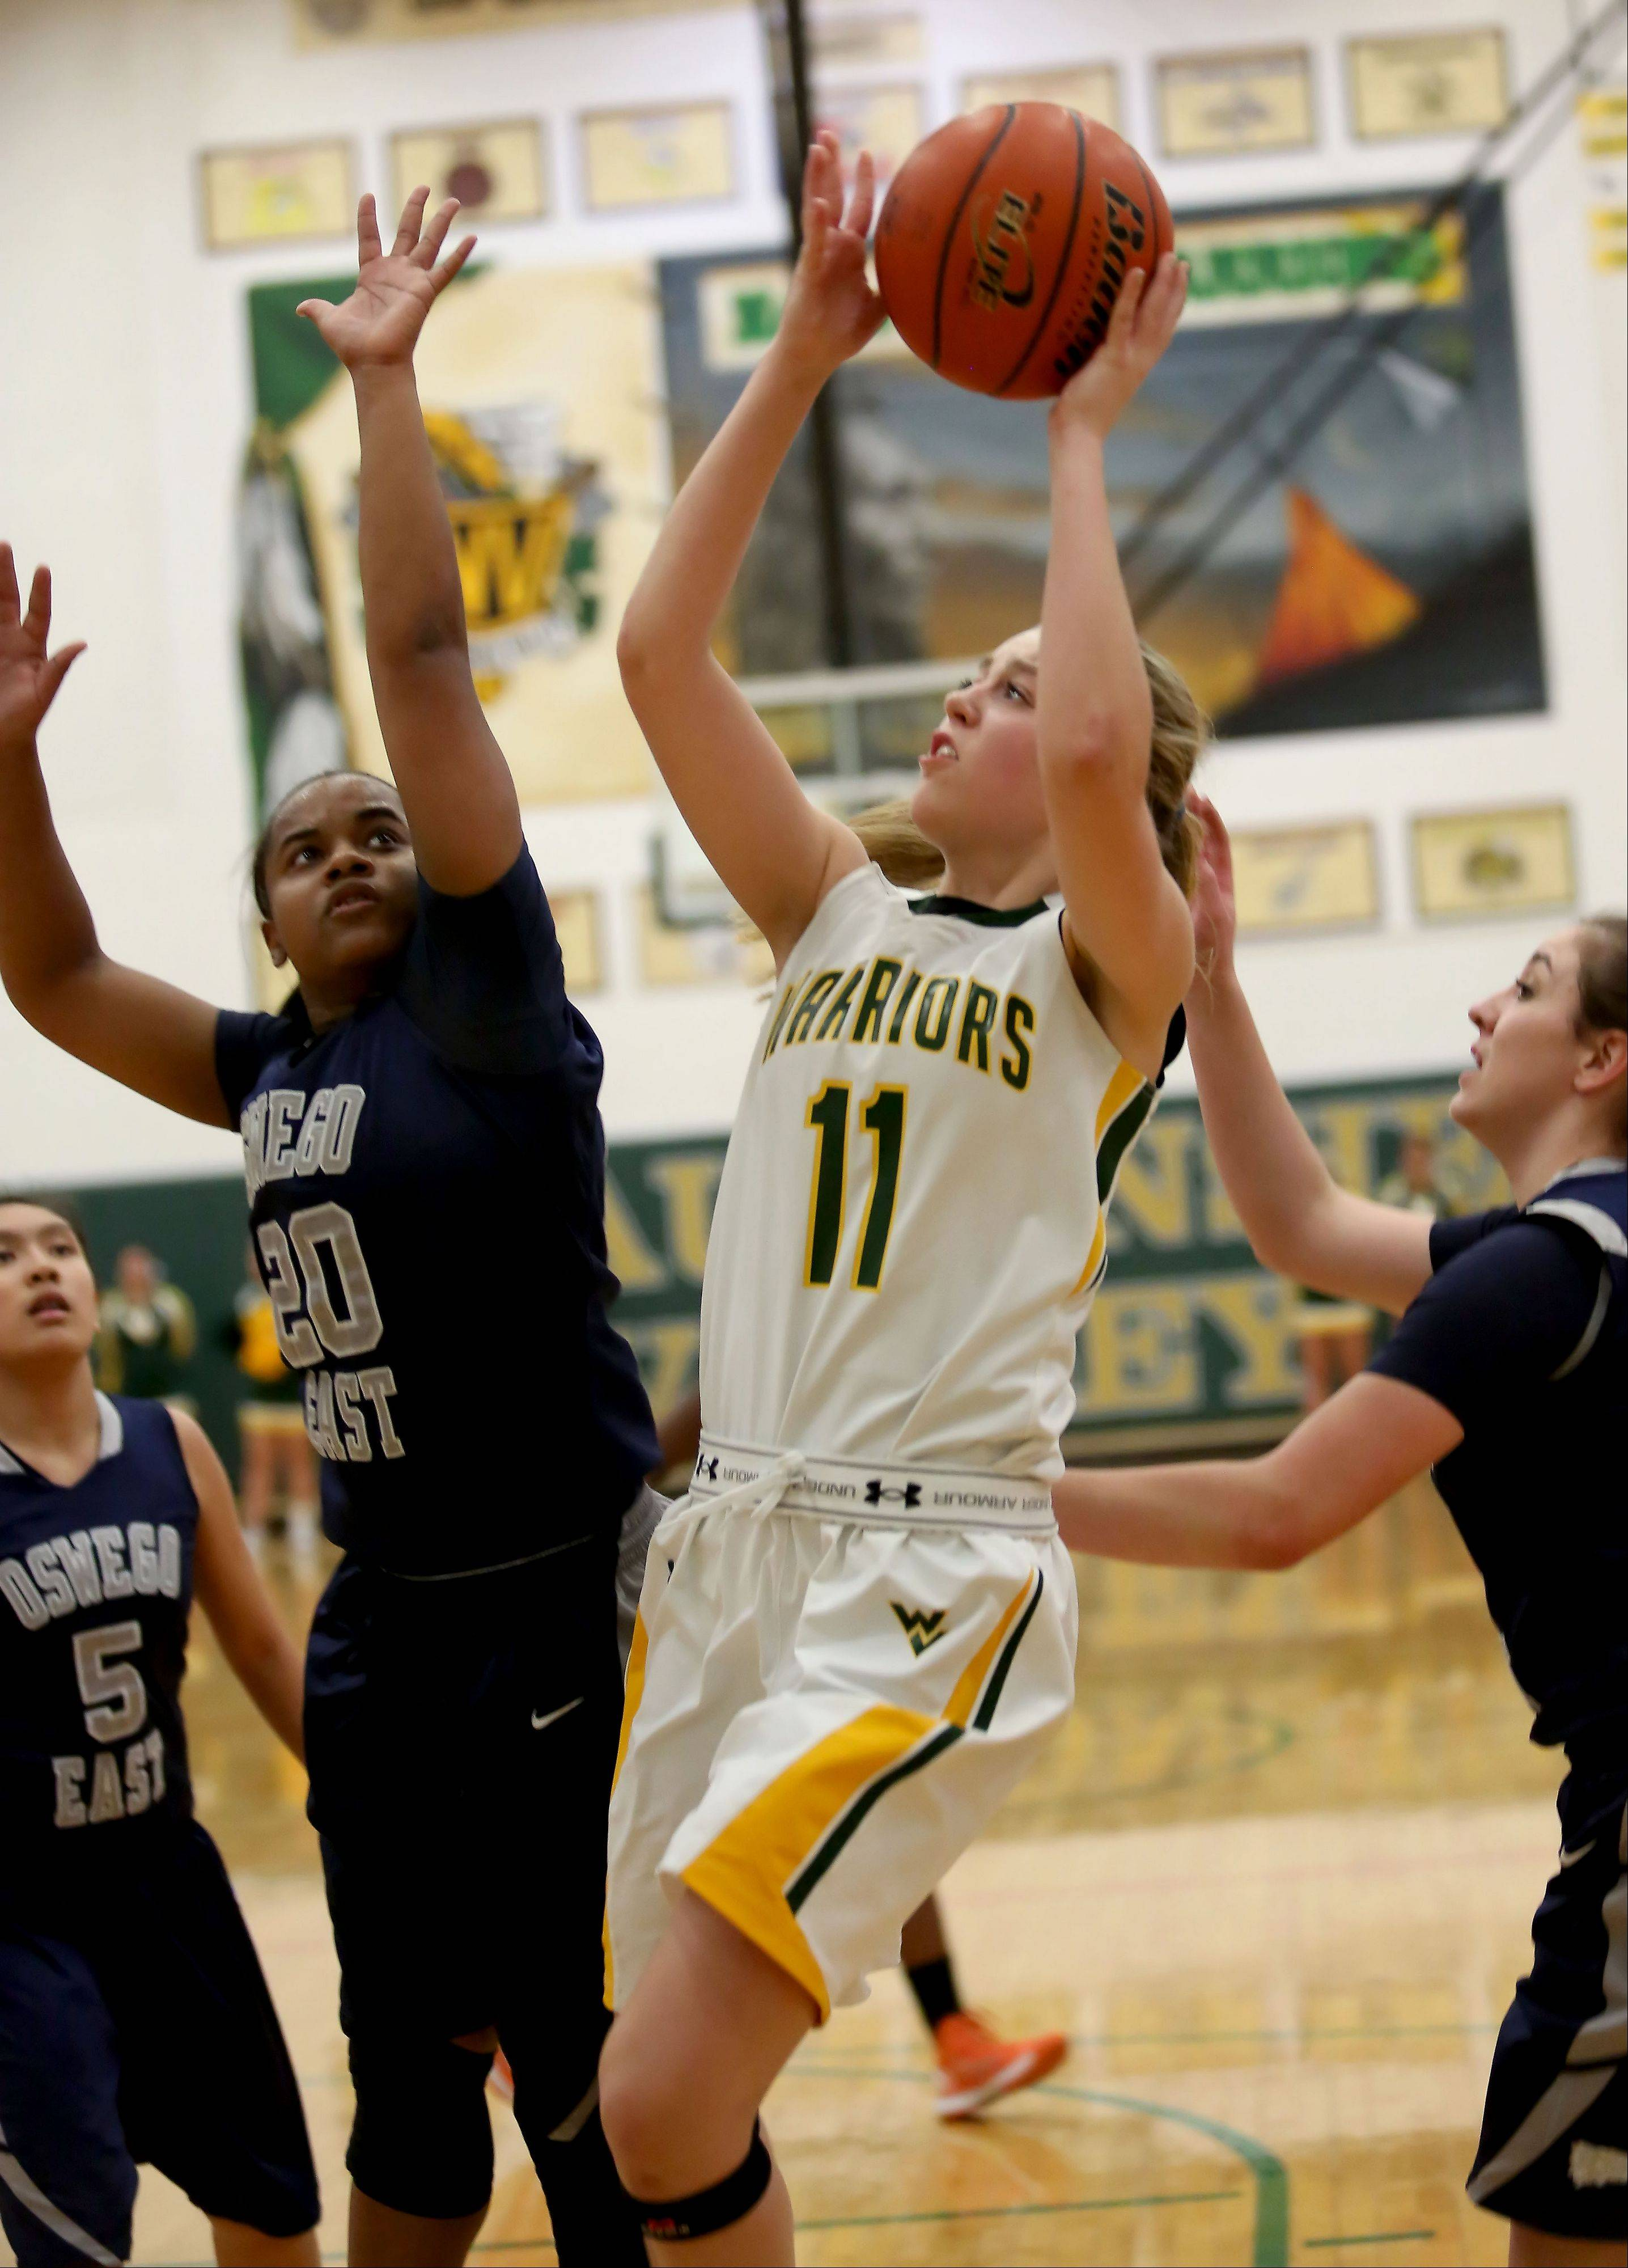 Waubonsie Valley's Katie D'Ouville goes for two points as Venita Parsons of Oswego East defends during girls basketball in Aurora on Monday.